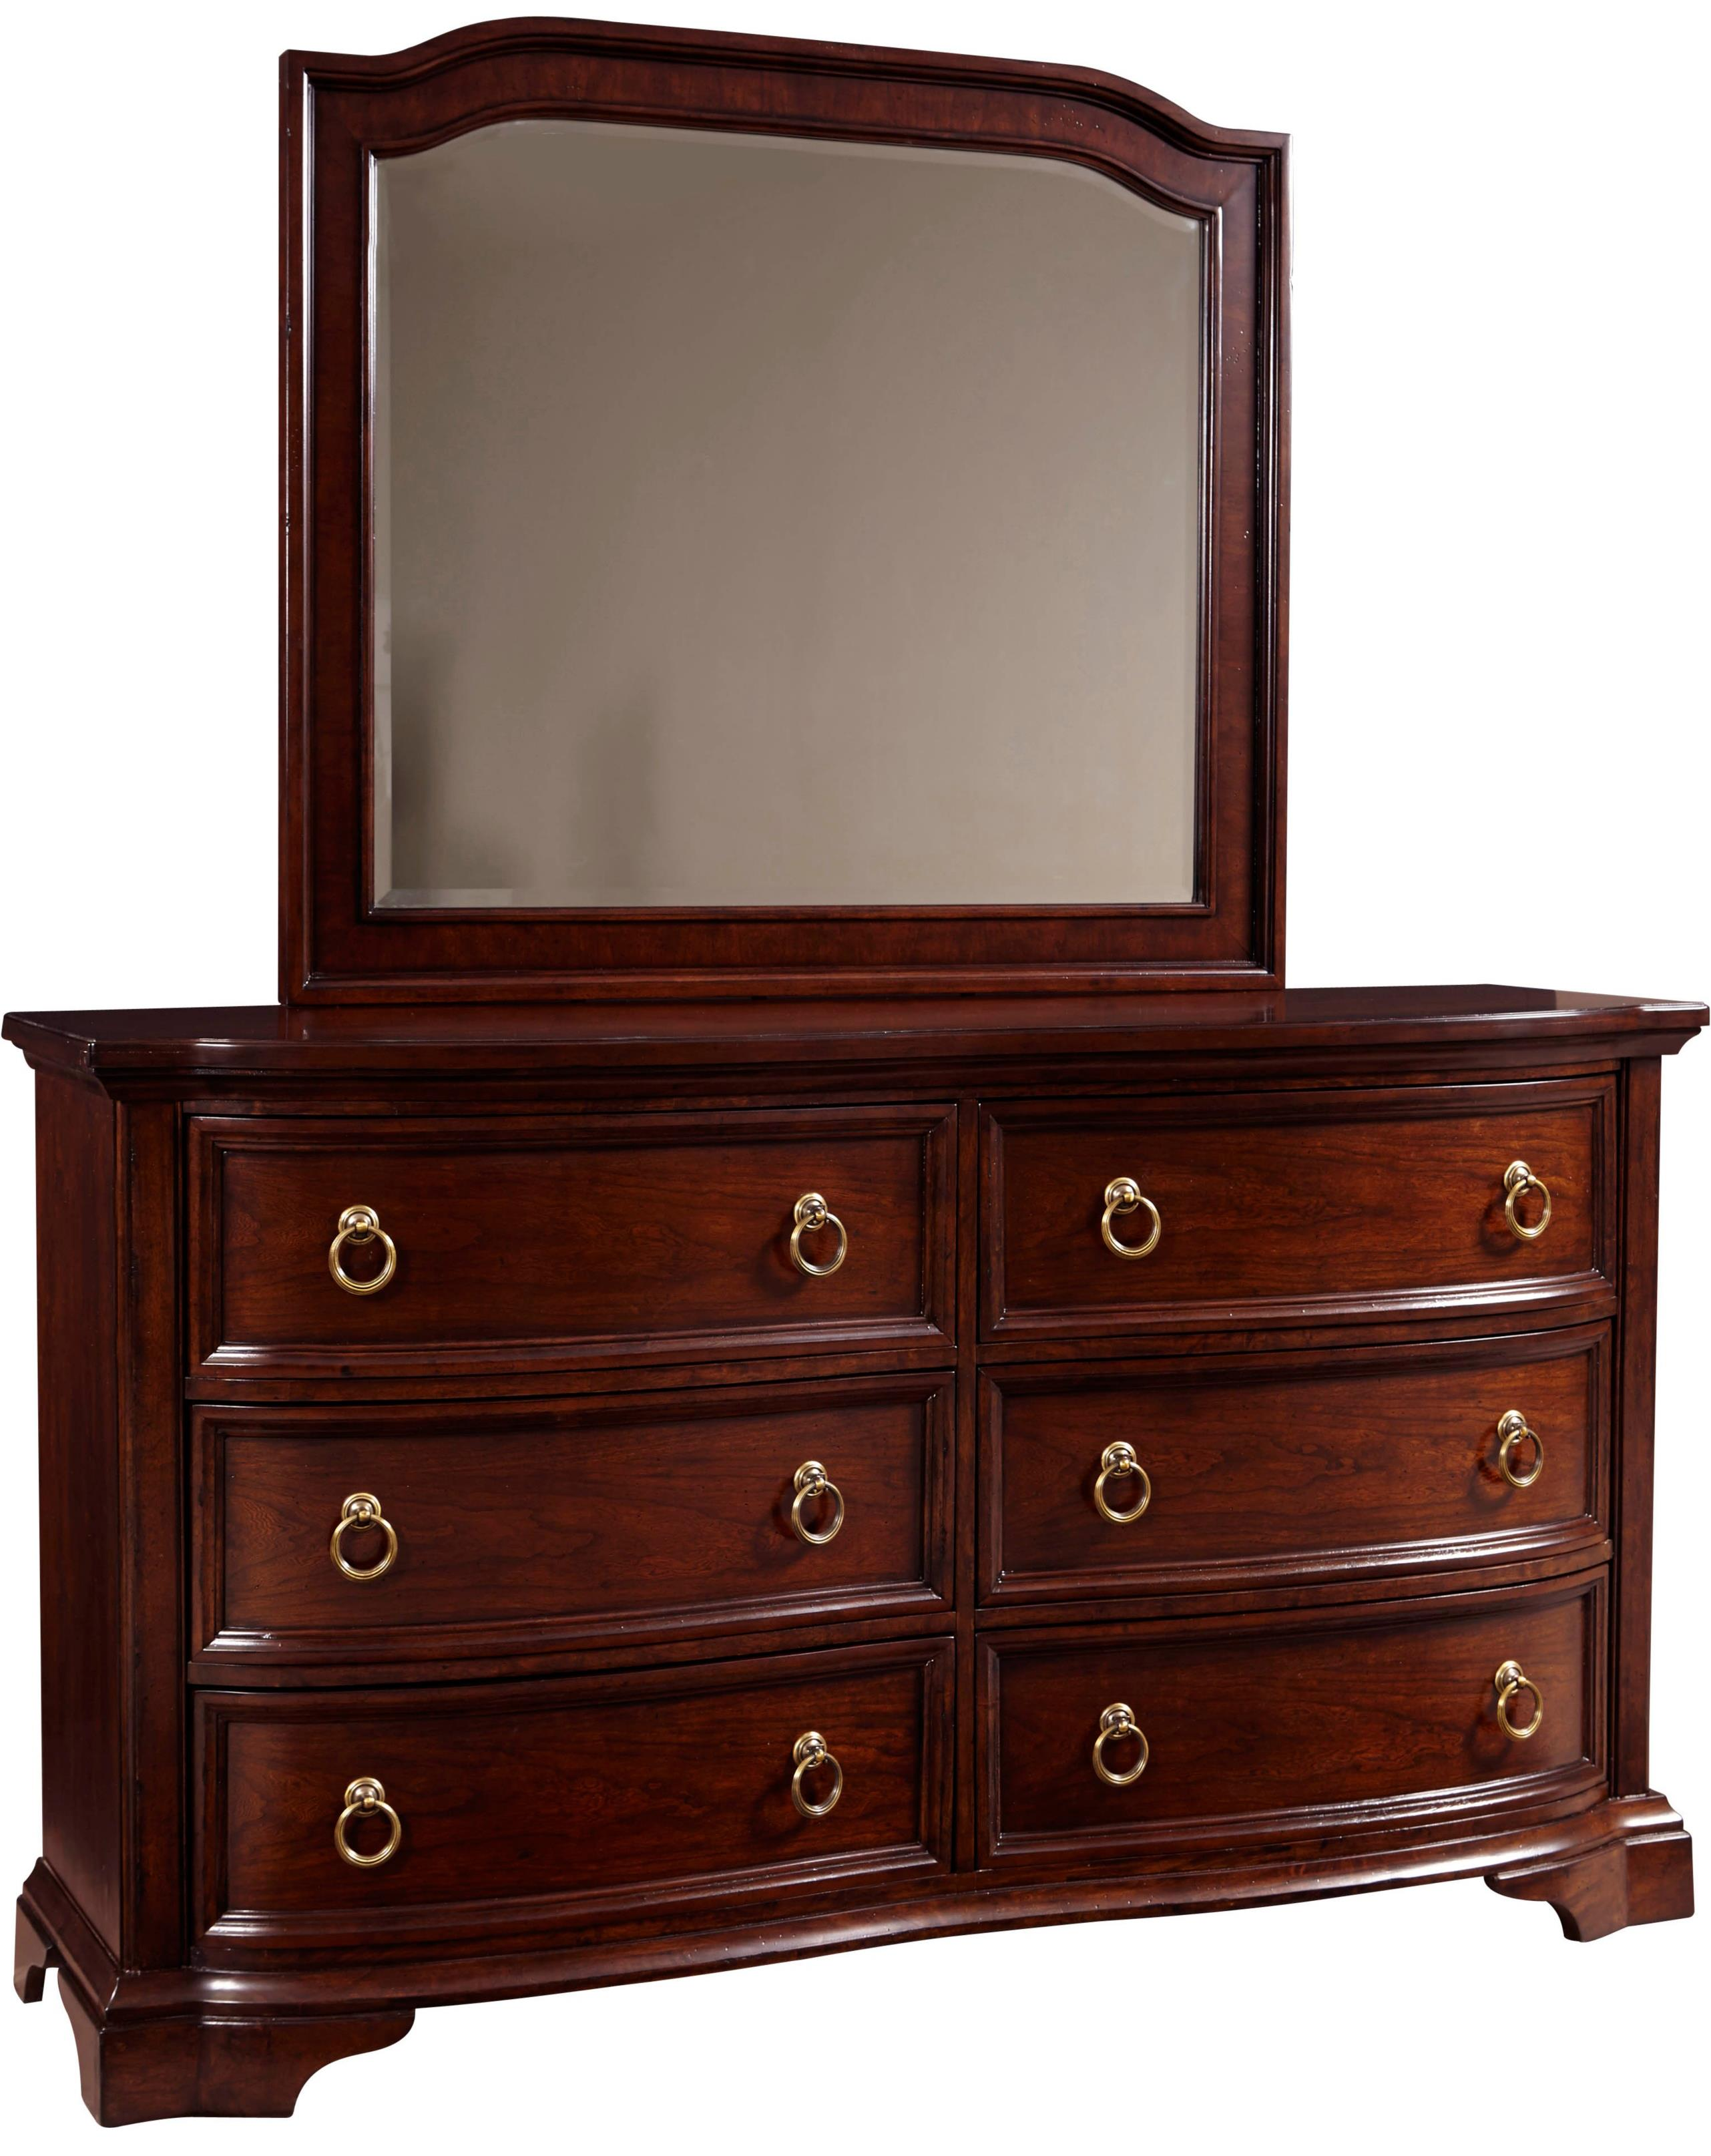 Broyhill Furniture Elaina Dresser and Mirror Set - Item Number: 4640-230+7